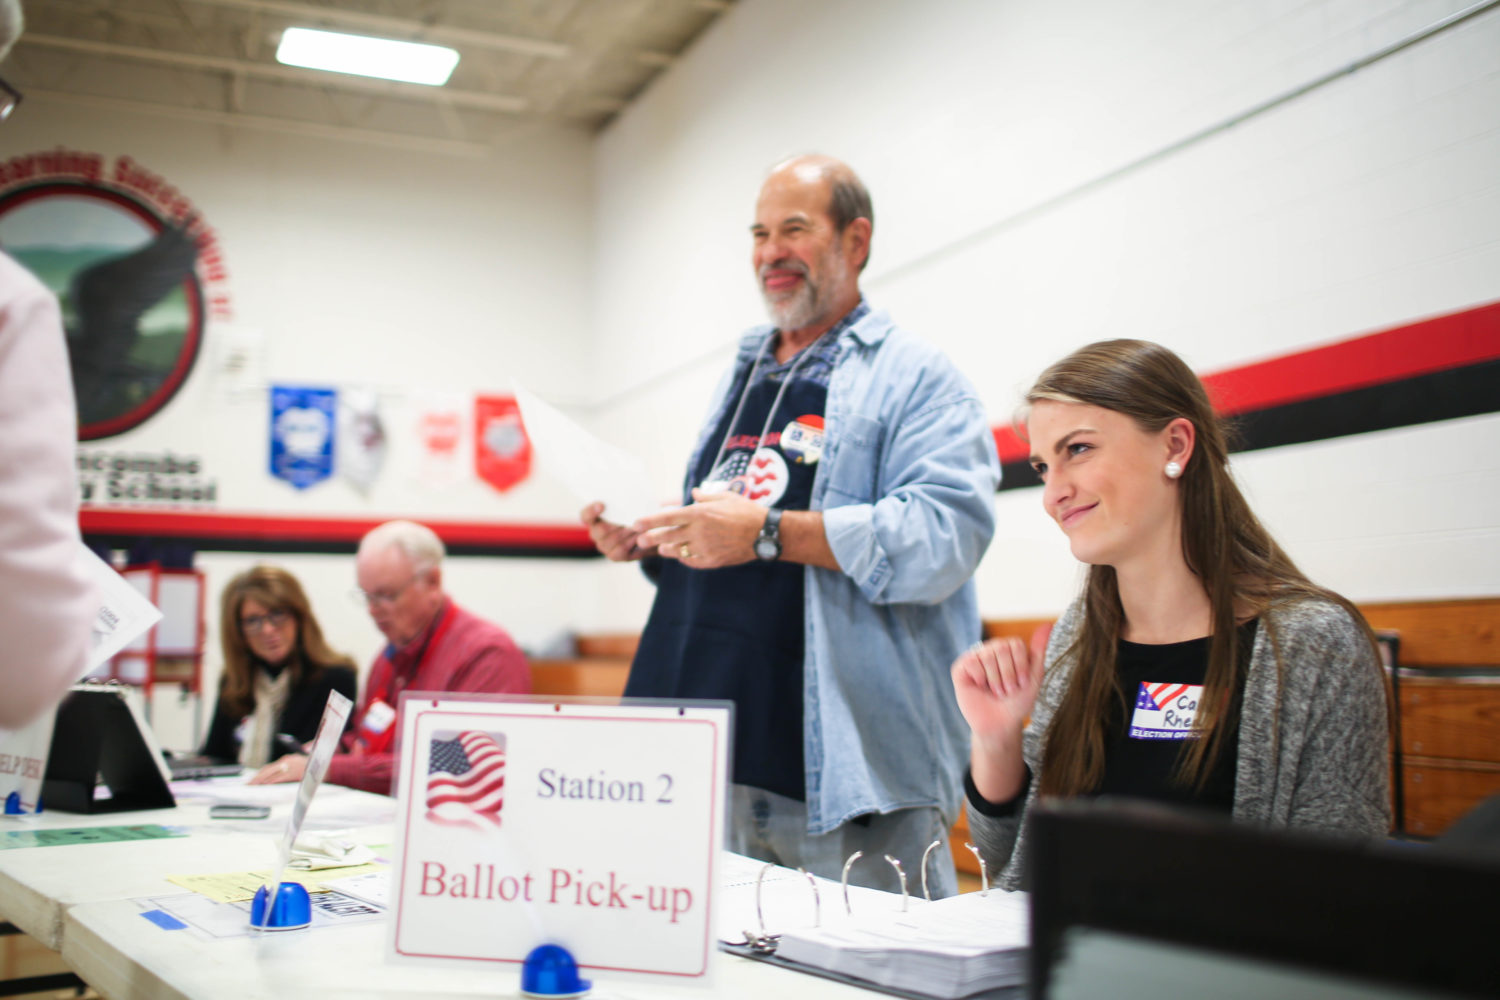 Student election assistant Callie Rhea helps to sign in voters at North Buncombe Elementary School in Weaverville on Tuesday. Rhea was volunteering at the precinct through her Civics class at North Buncombe High School. Colby Rabon / Carolina Public Press